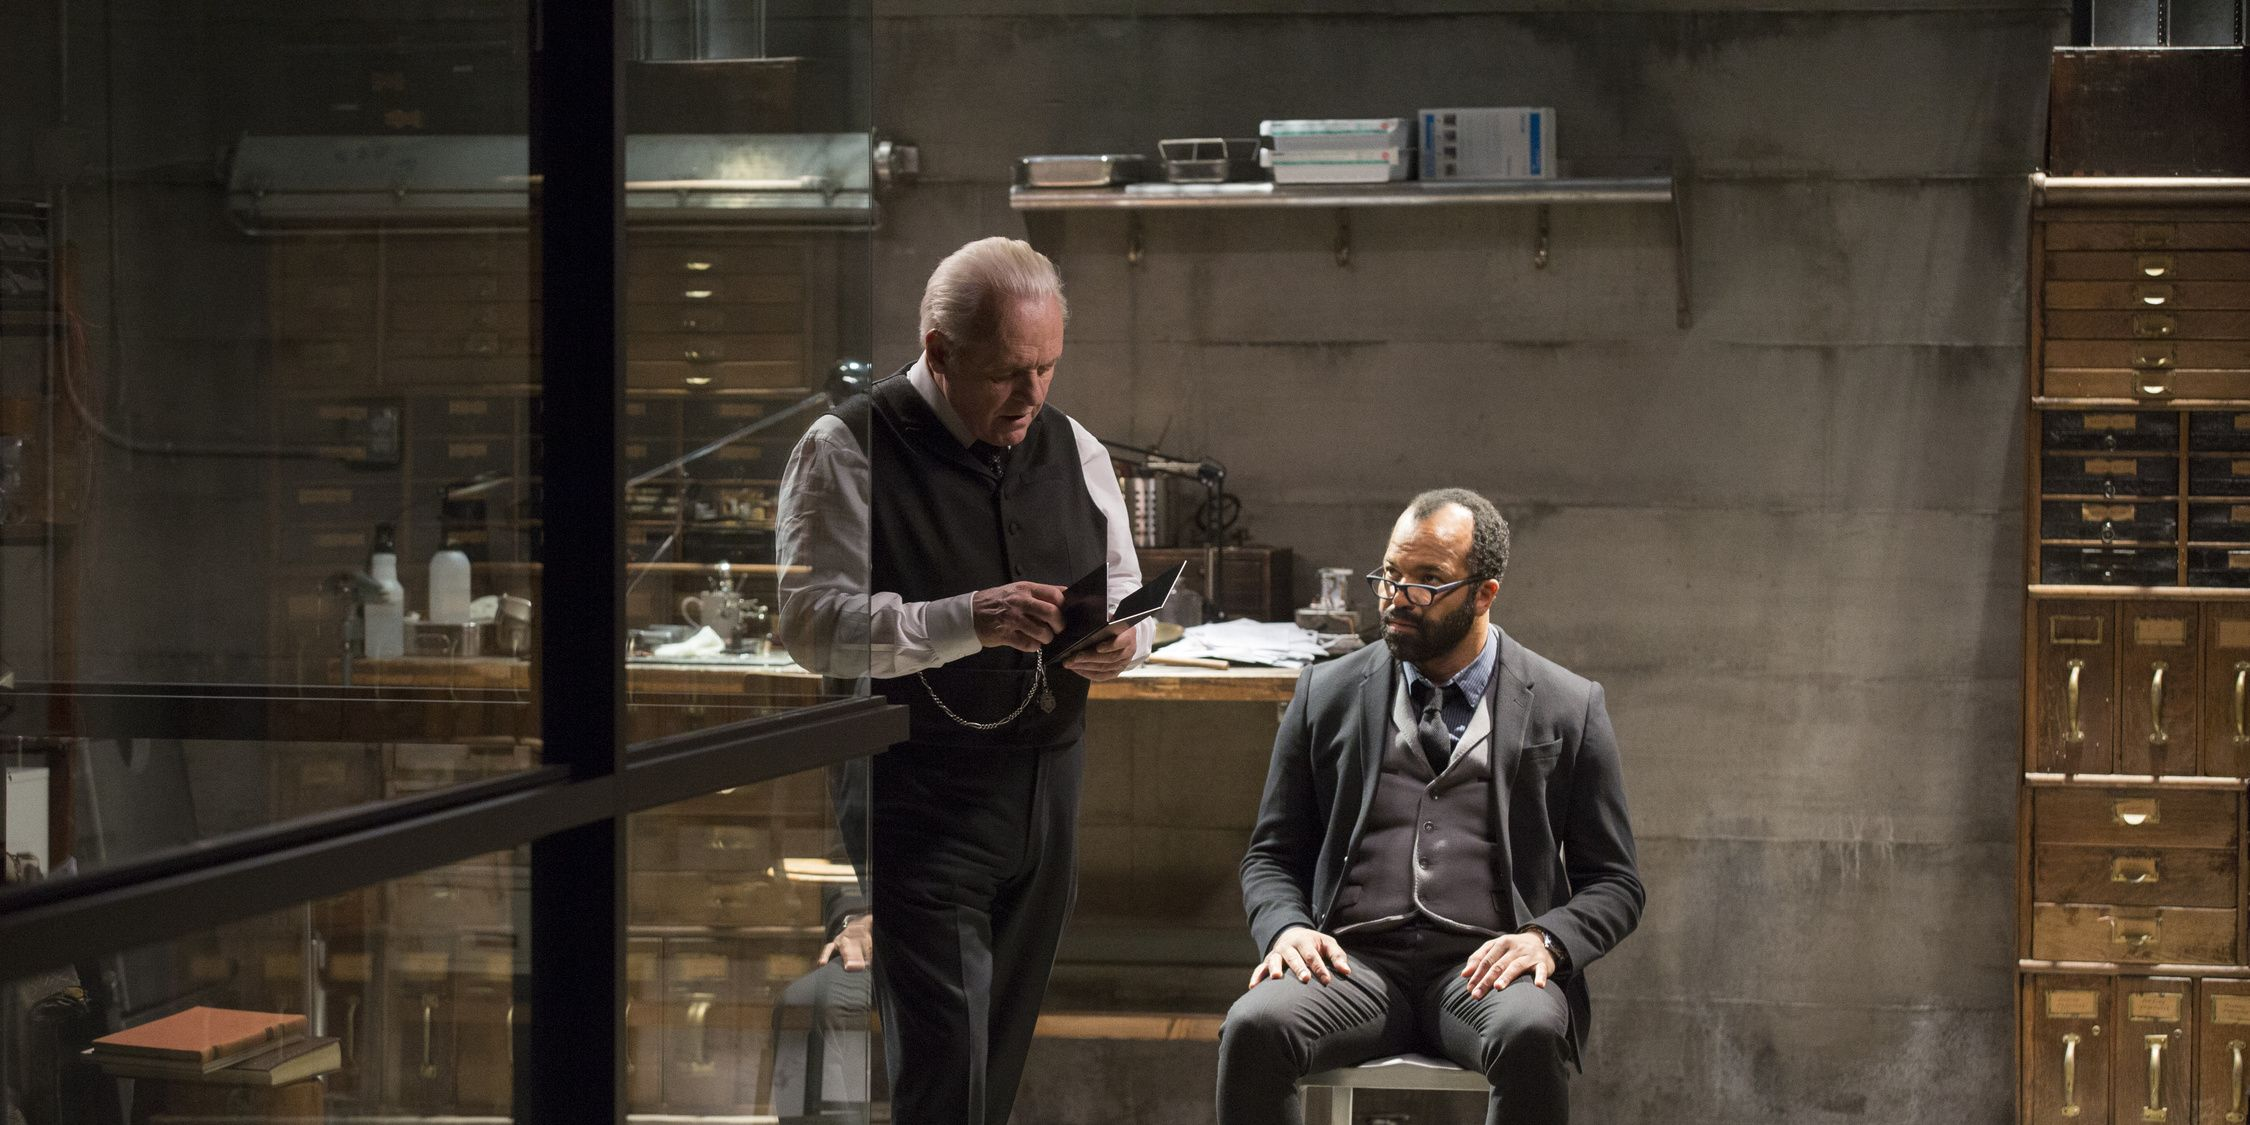 Ford (Anthony Hopkins) and Bernard (Jeffrey Wright) in 'Westworld' s01e08, 'Trace Decay'